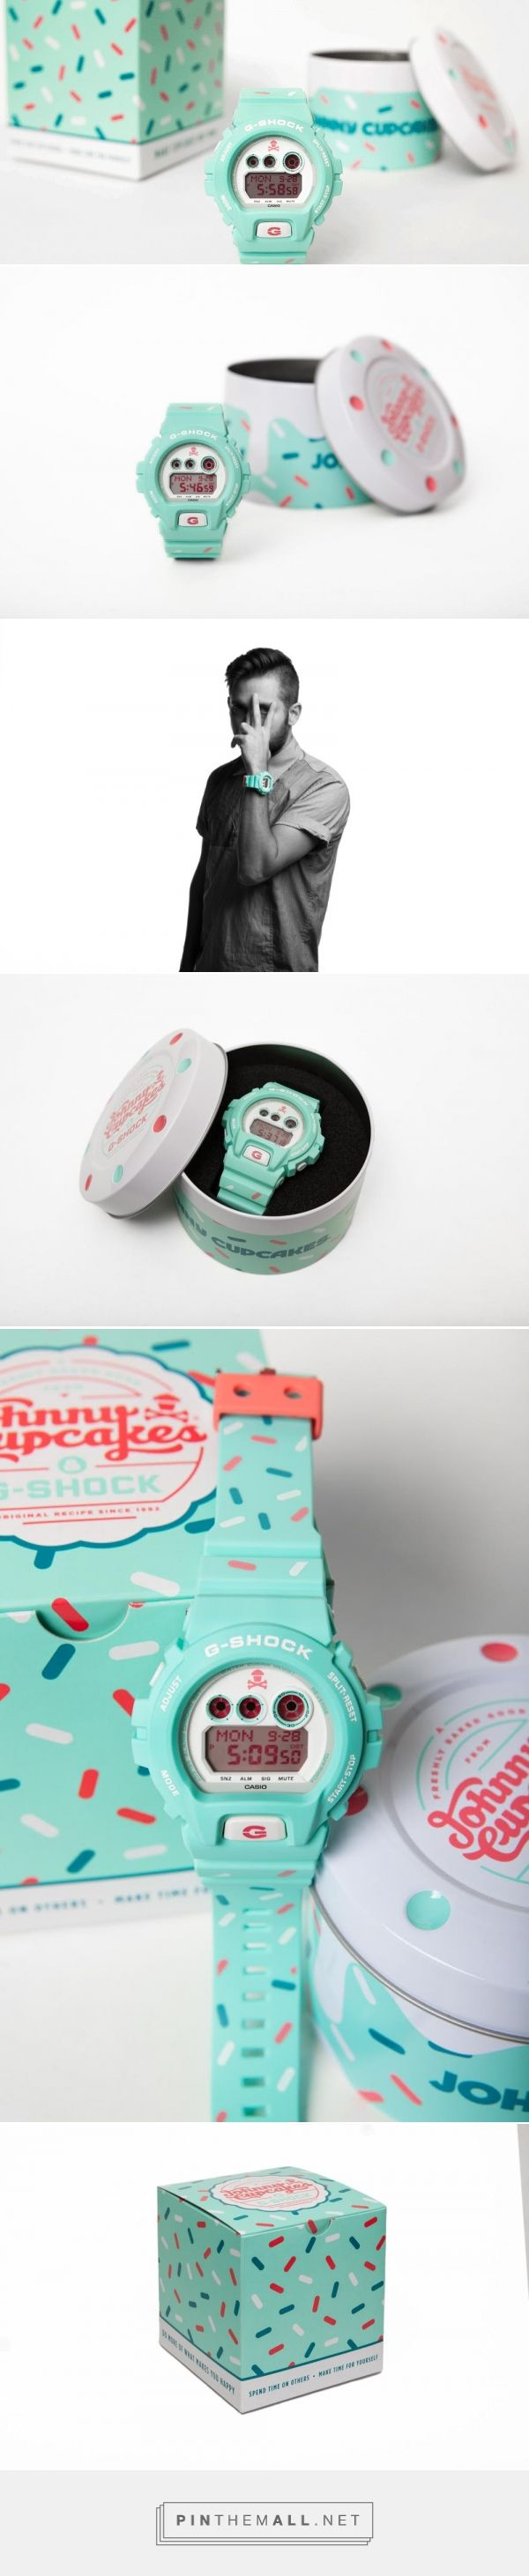 Casio G-Shock X Johnny Cupcakes — The Dieline - Branding & Packaging - created via http://pinthemall.net